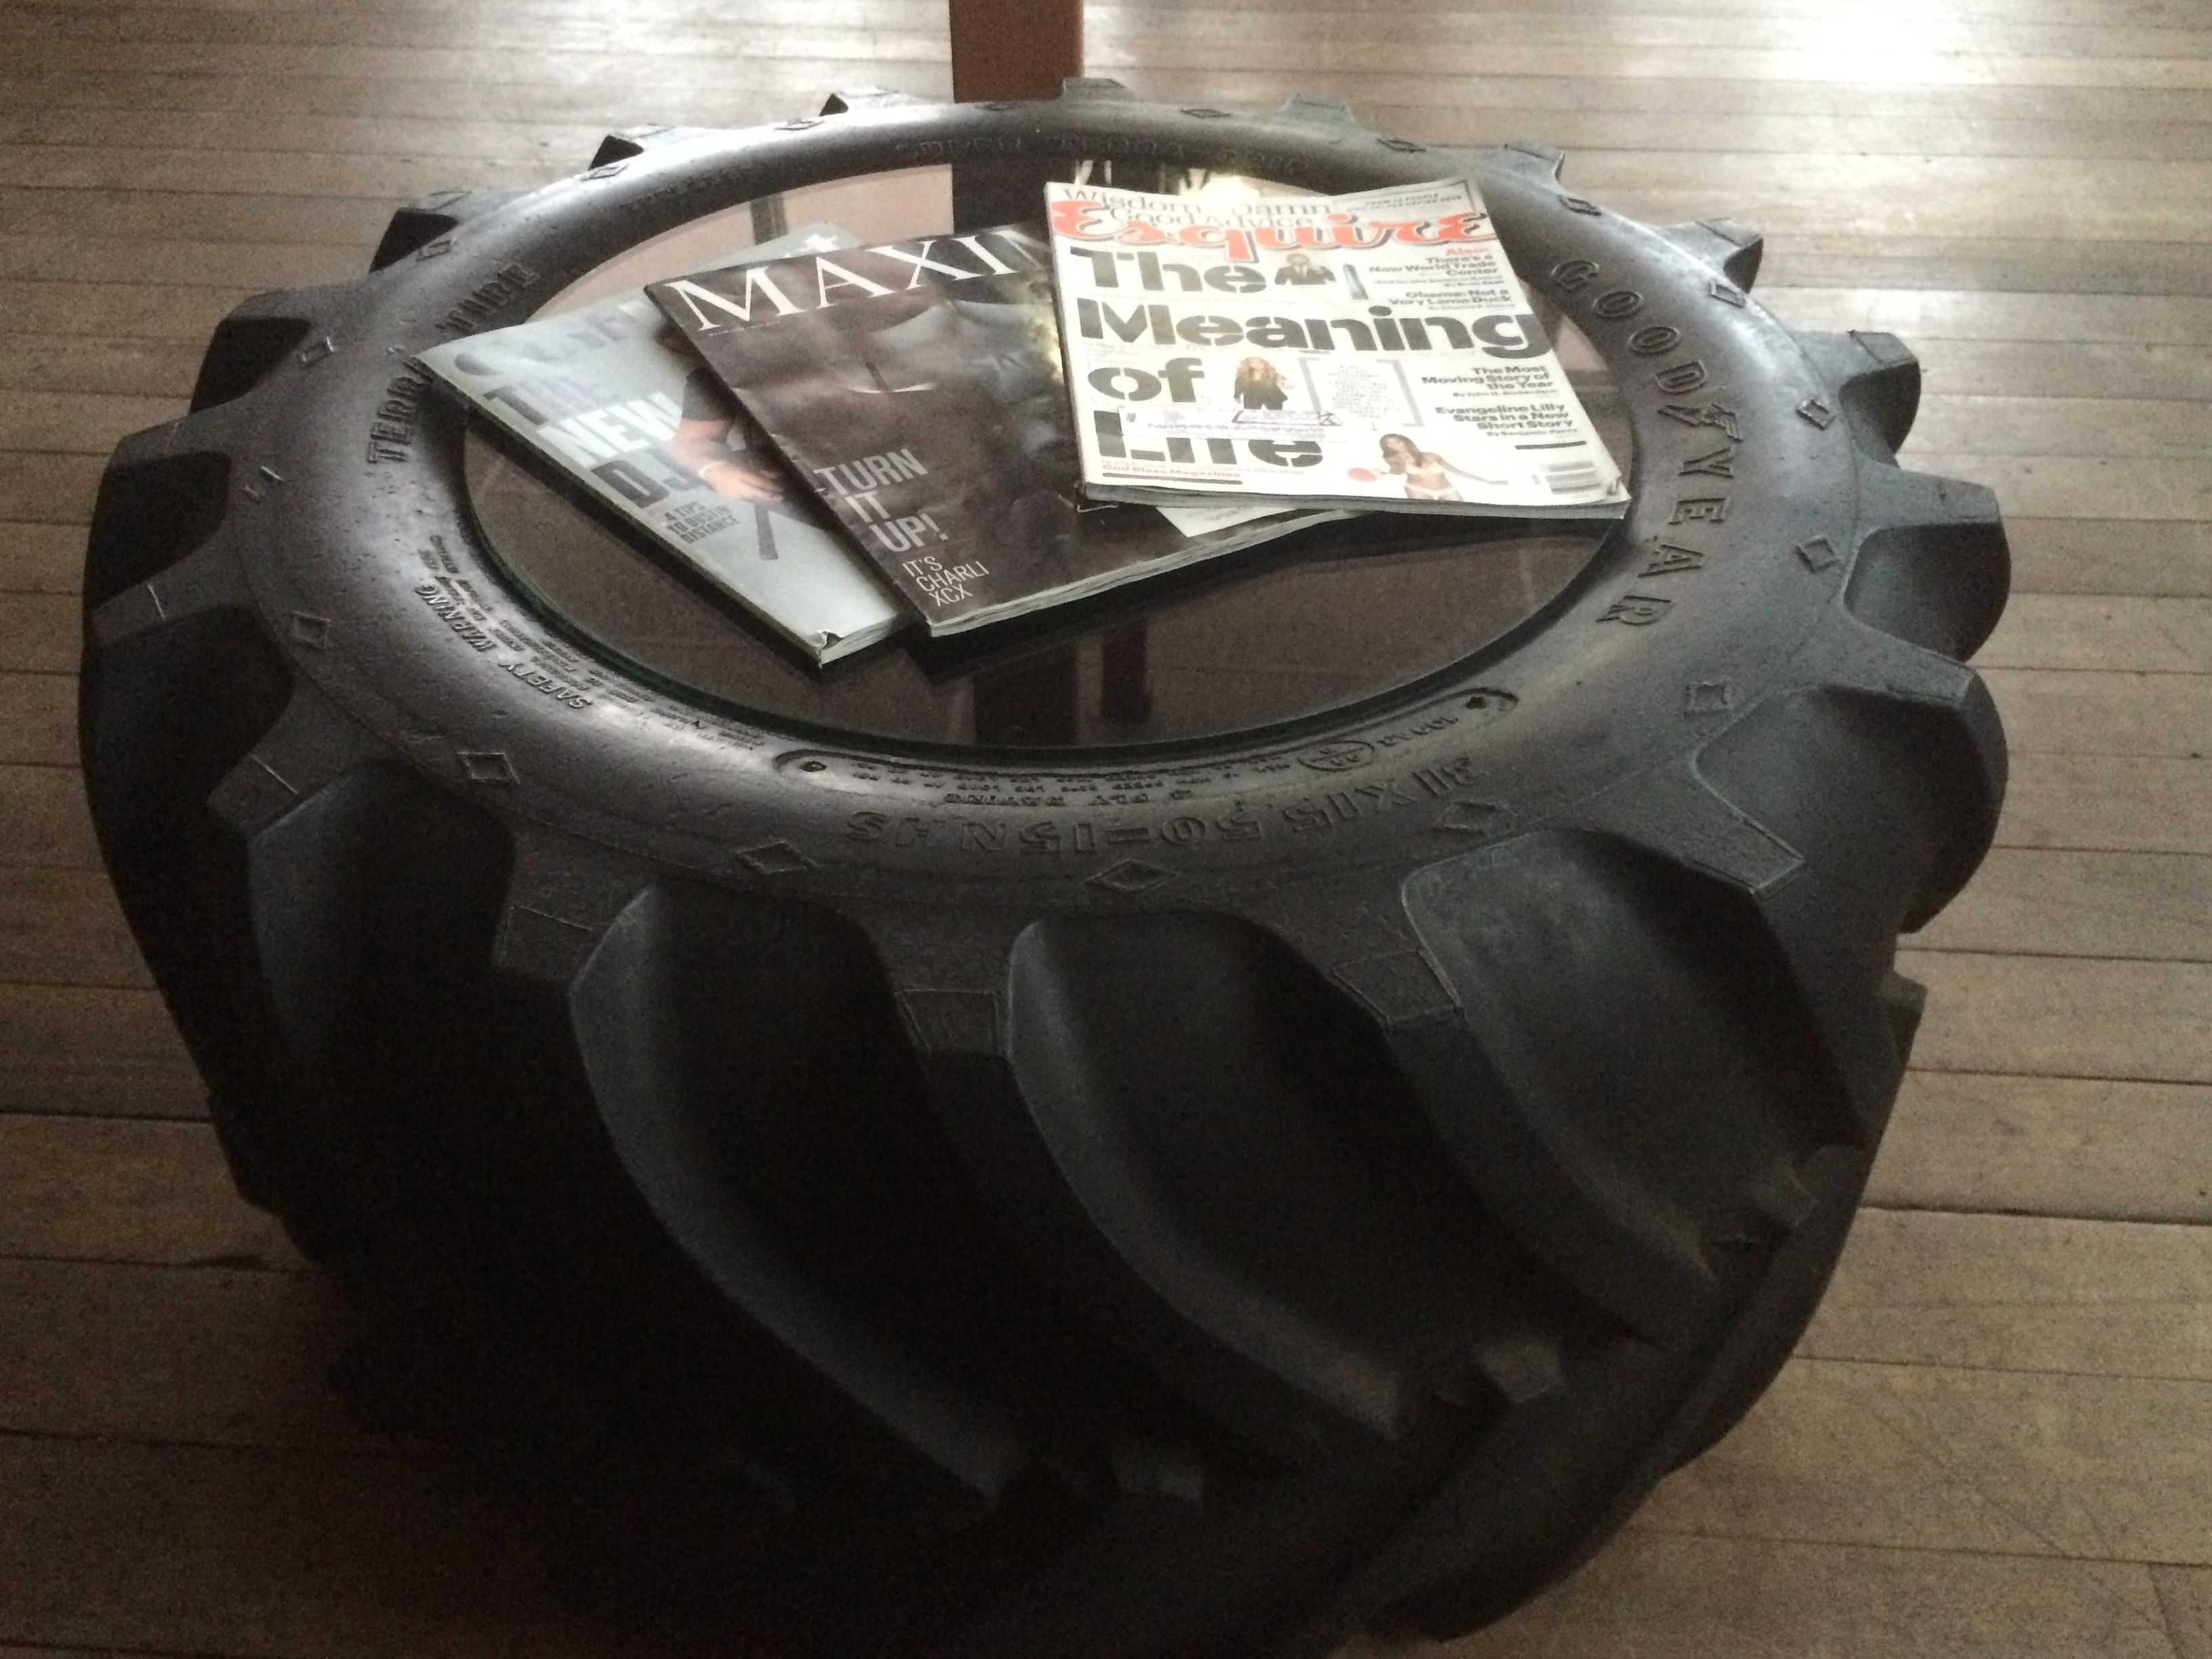 10+ Tractor tire repairs near me ideas in 2021